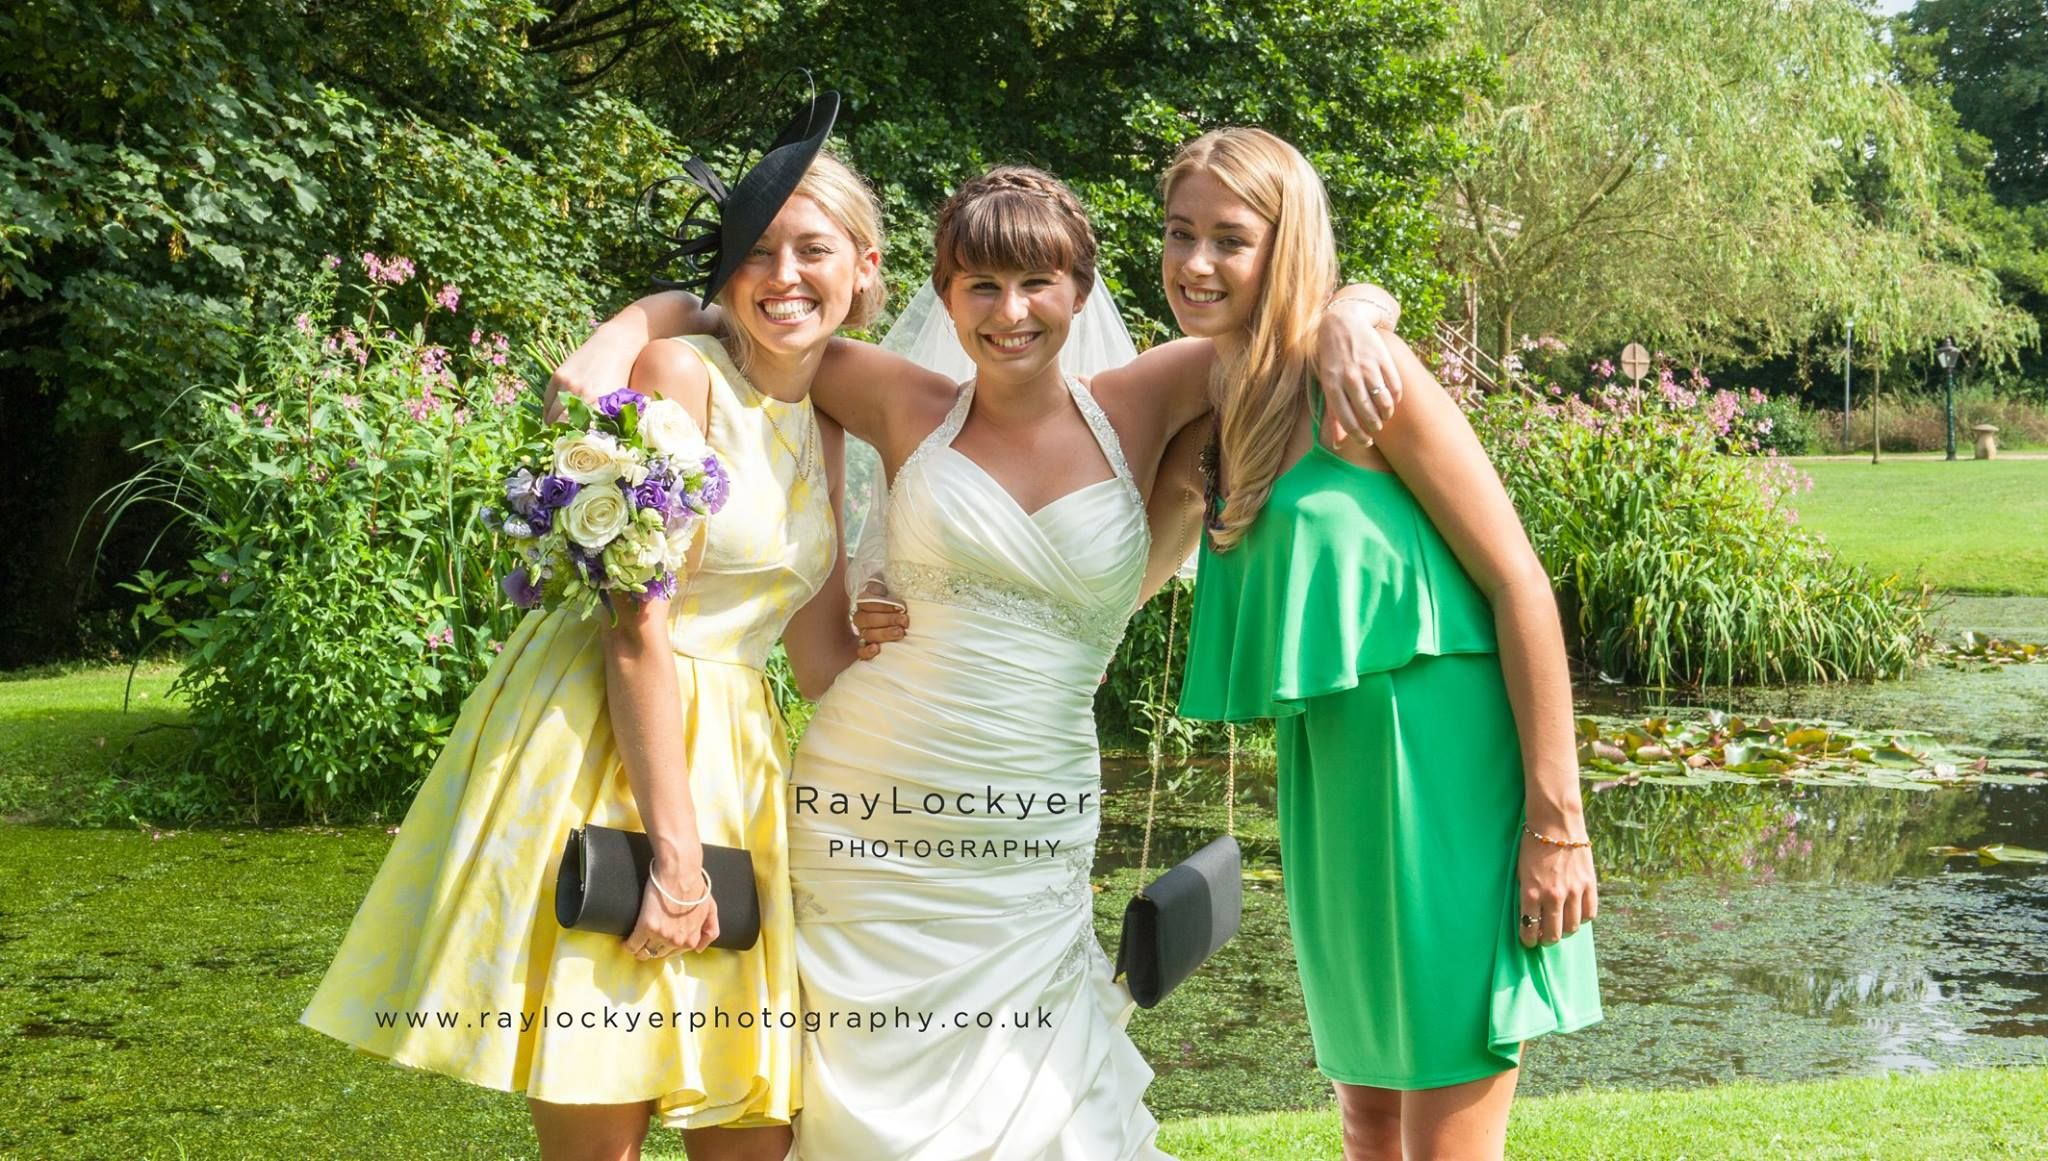 Ray Lockyer Yeovil Wedding Photographer - Bride with friends at Haselbury Mill